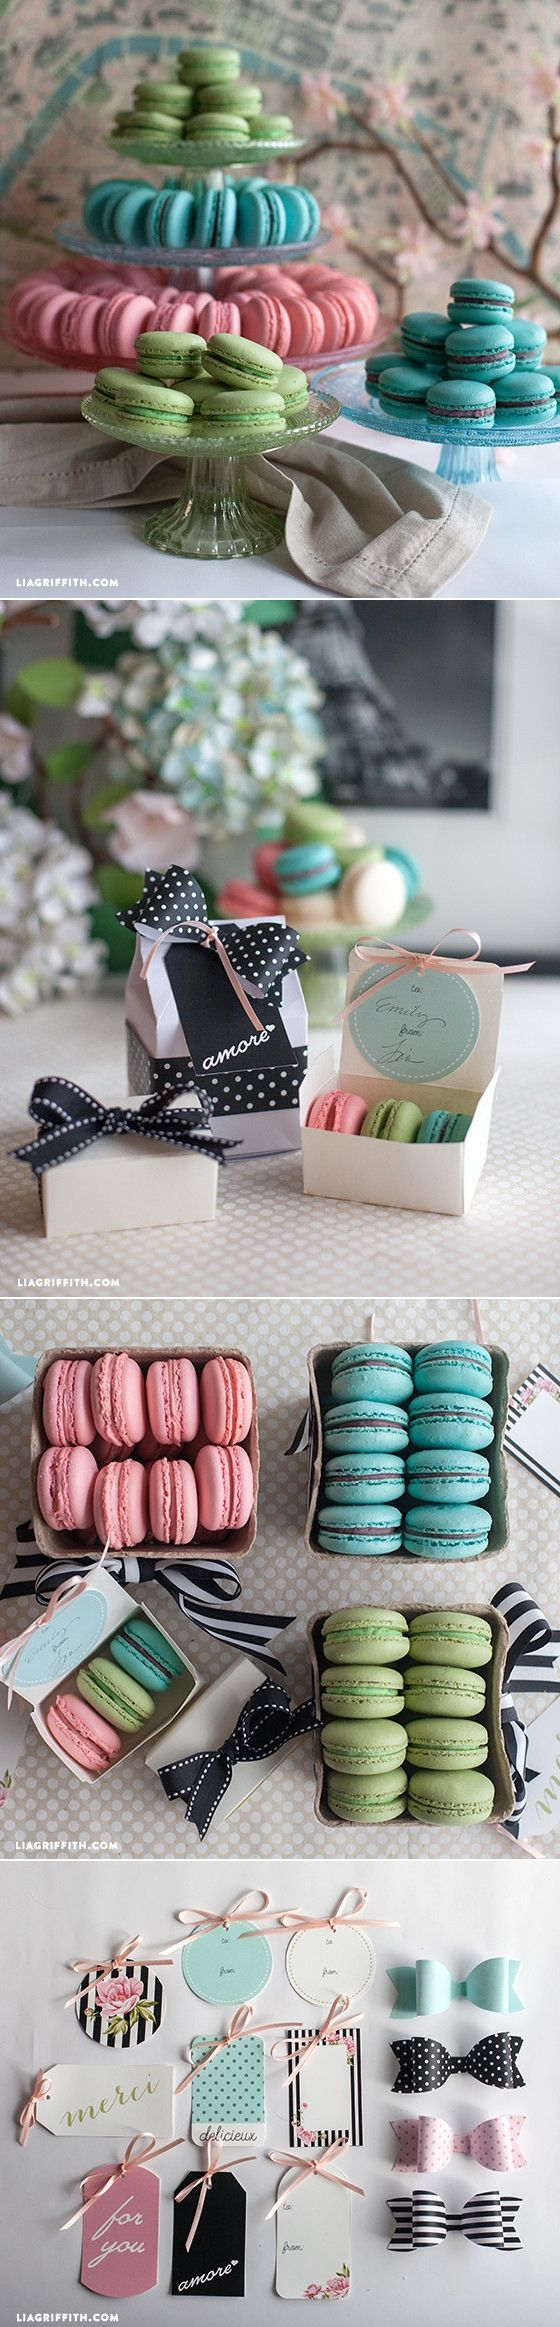 Printable Gift Tags at www.LiaGriffith.com #SpringtimeinParis